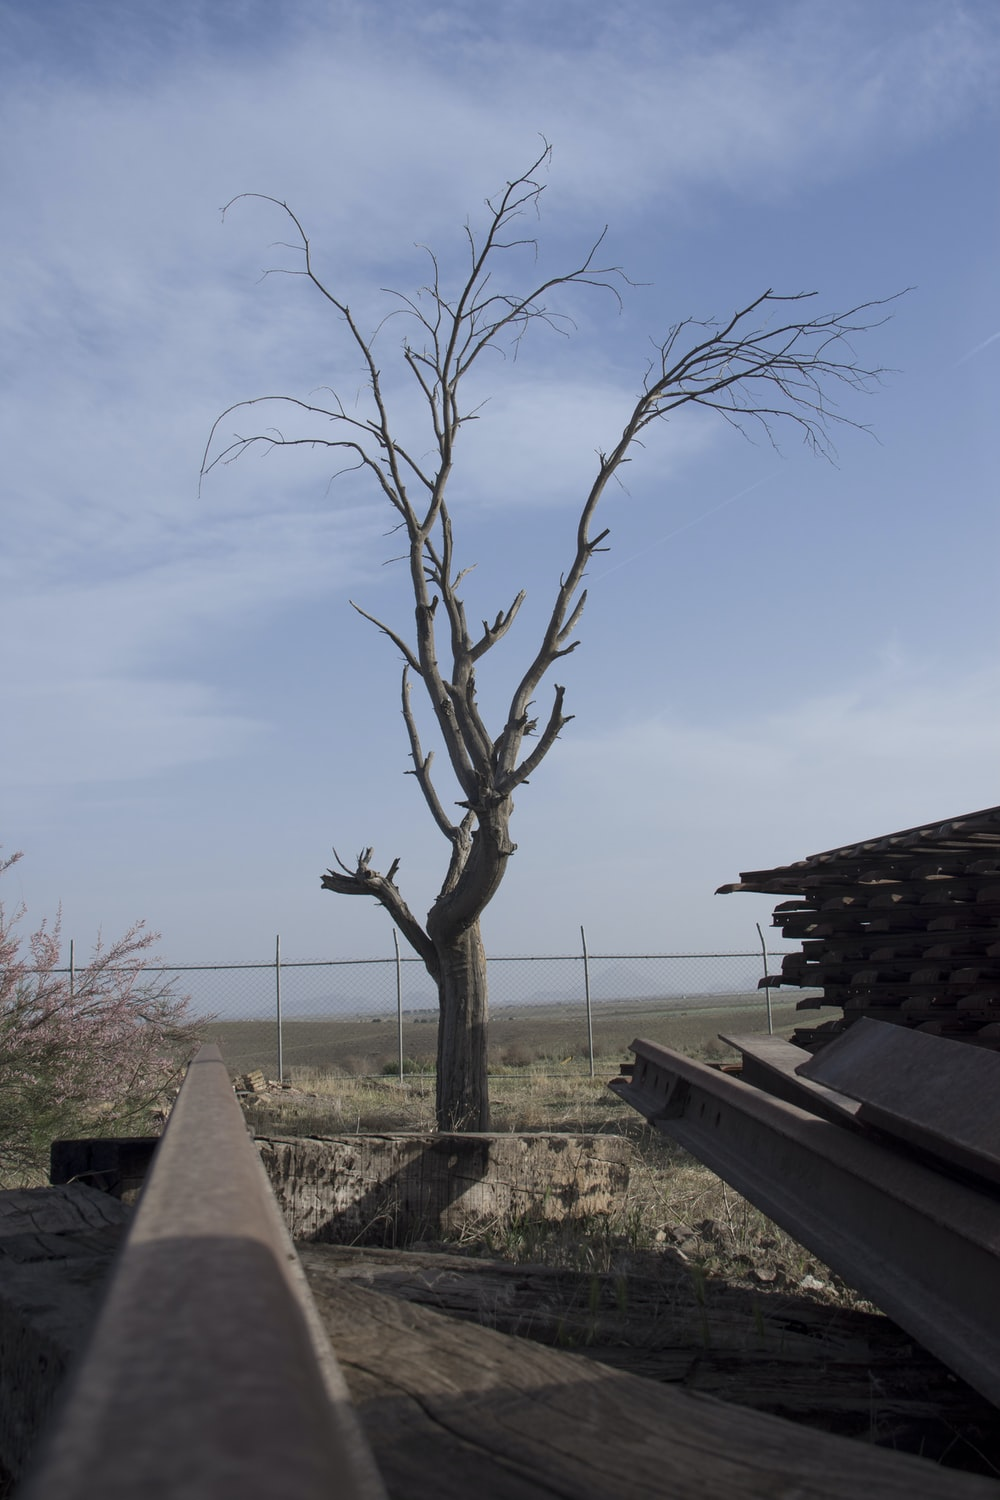 bare tree near brown wooden fence during daytime